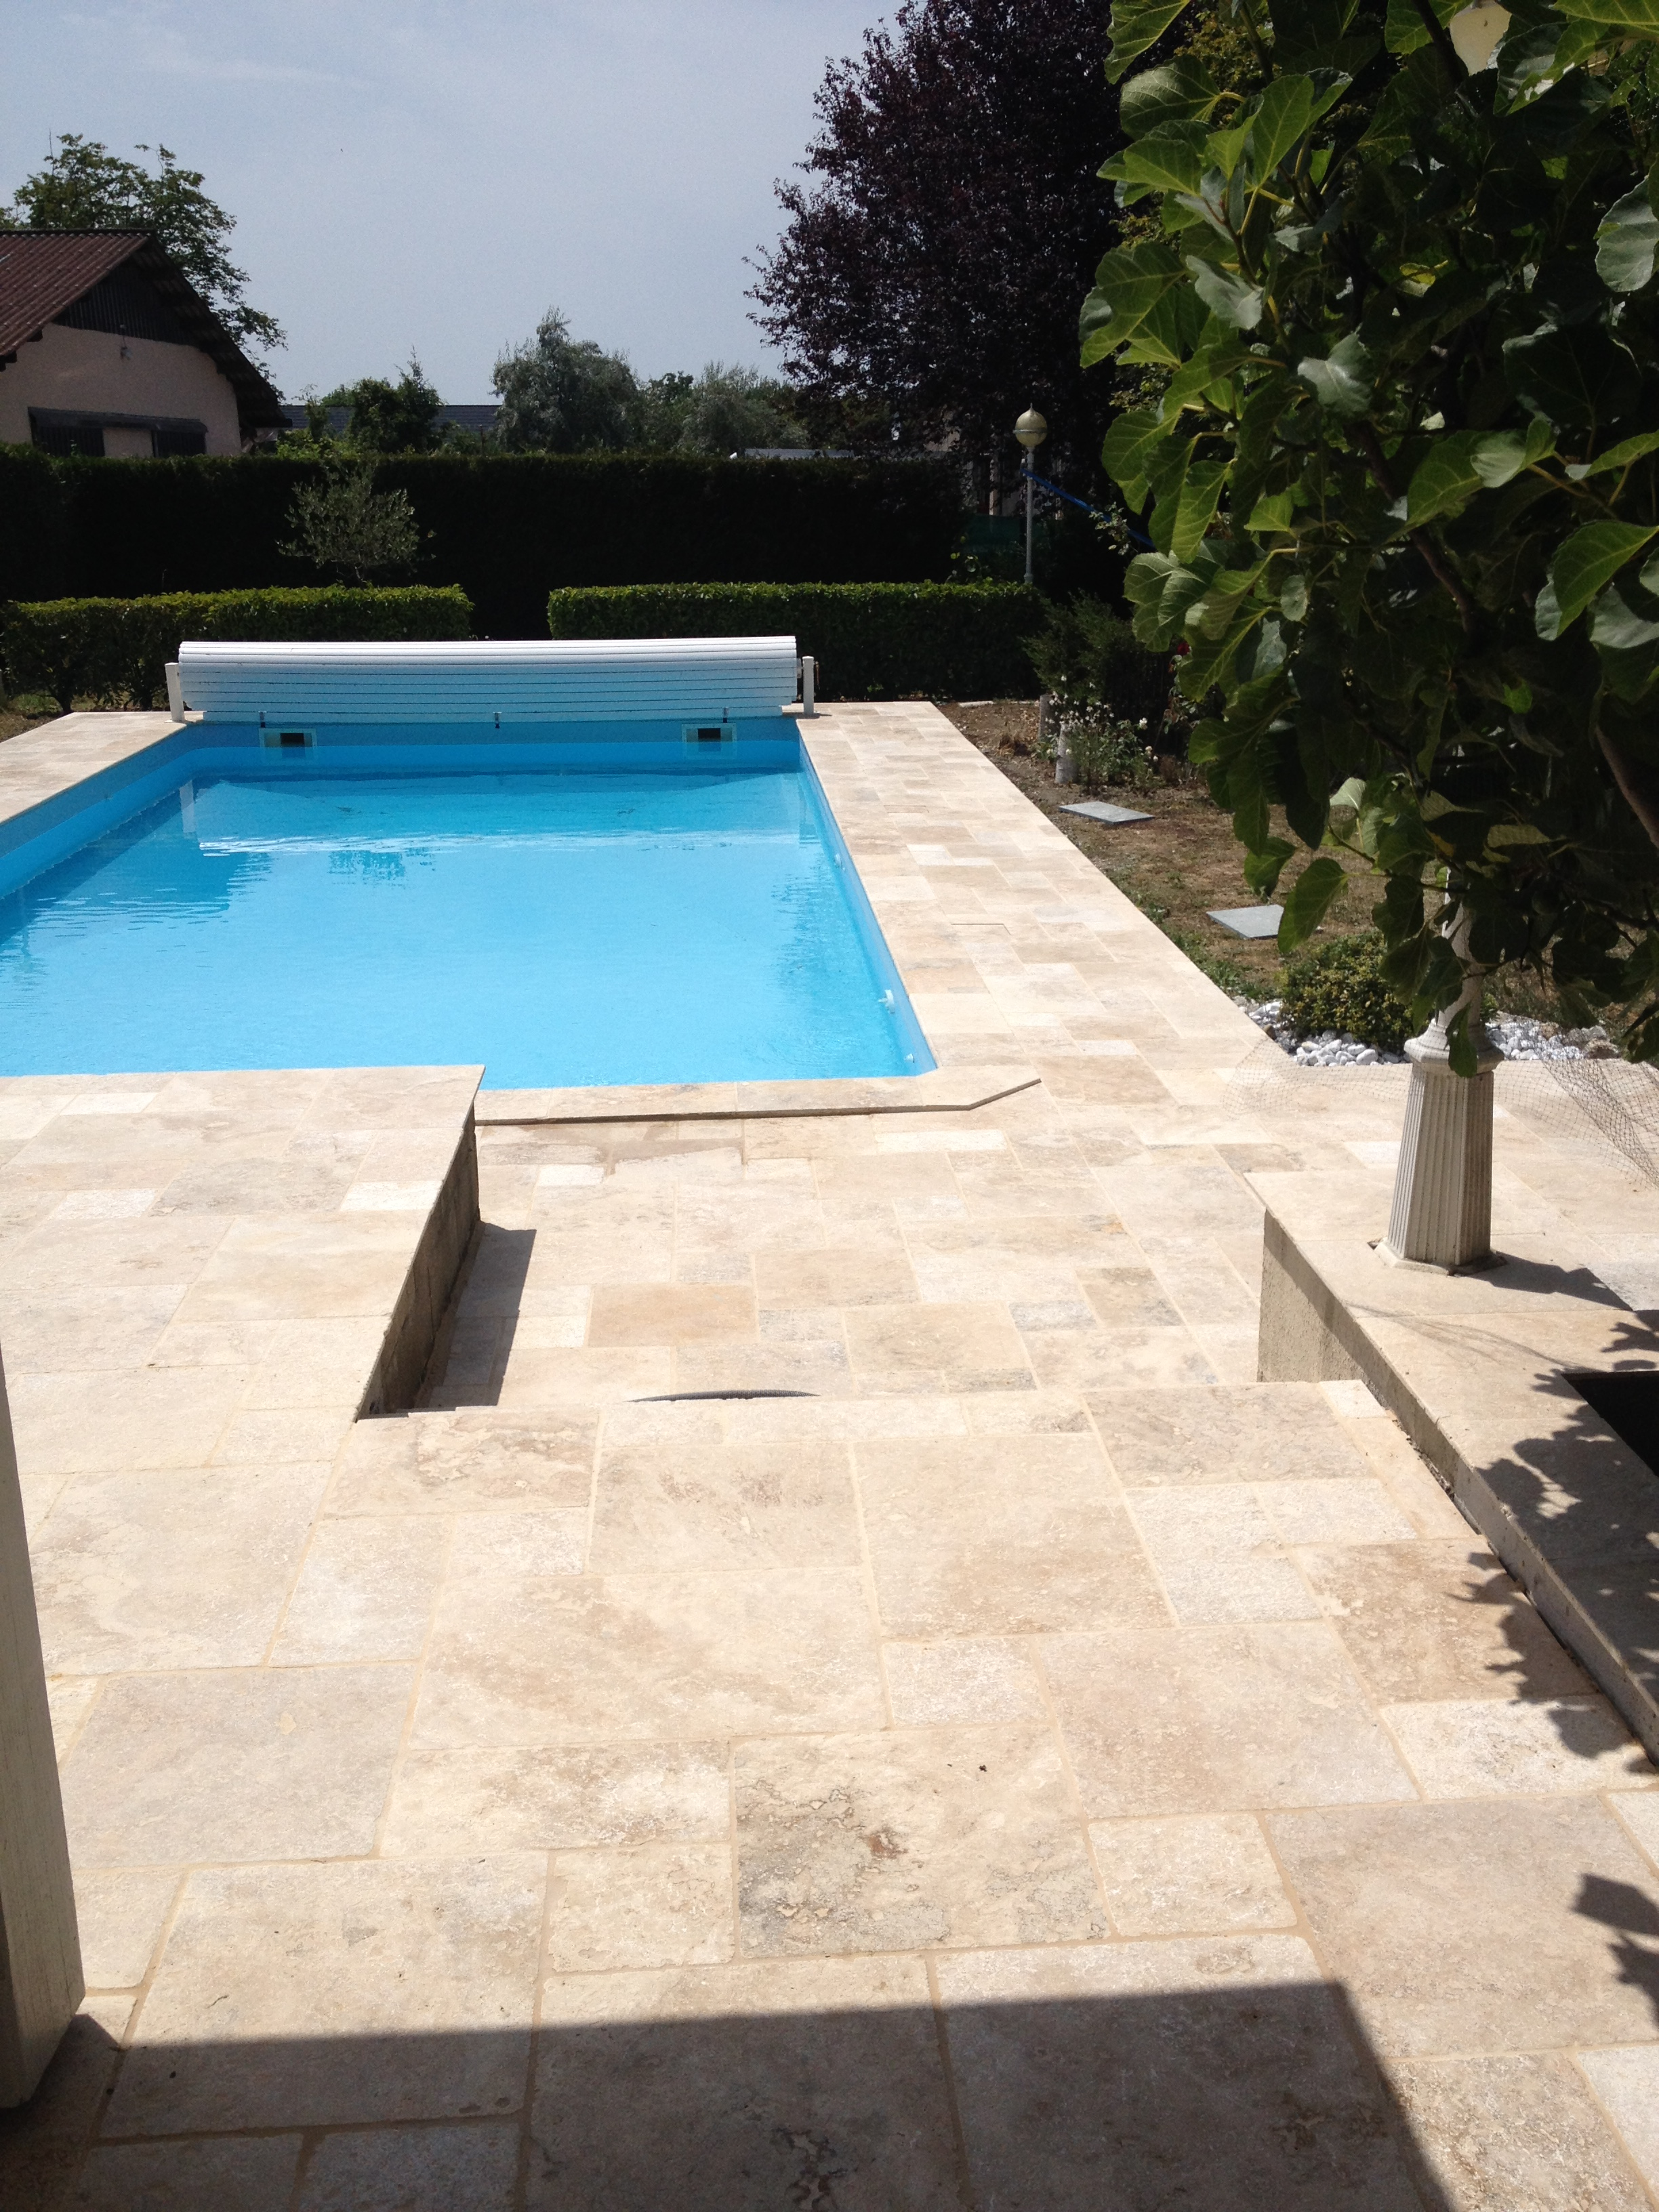 Carrelage Plage Piscine Imitation Bois Plage Piscine Carrelage Awesome Carrelage Plage Piscine